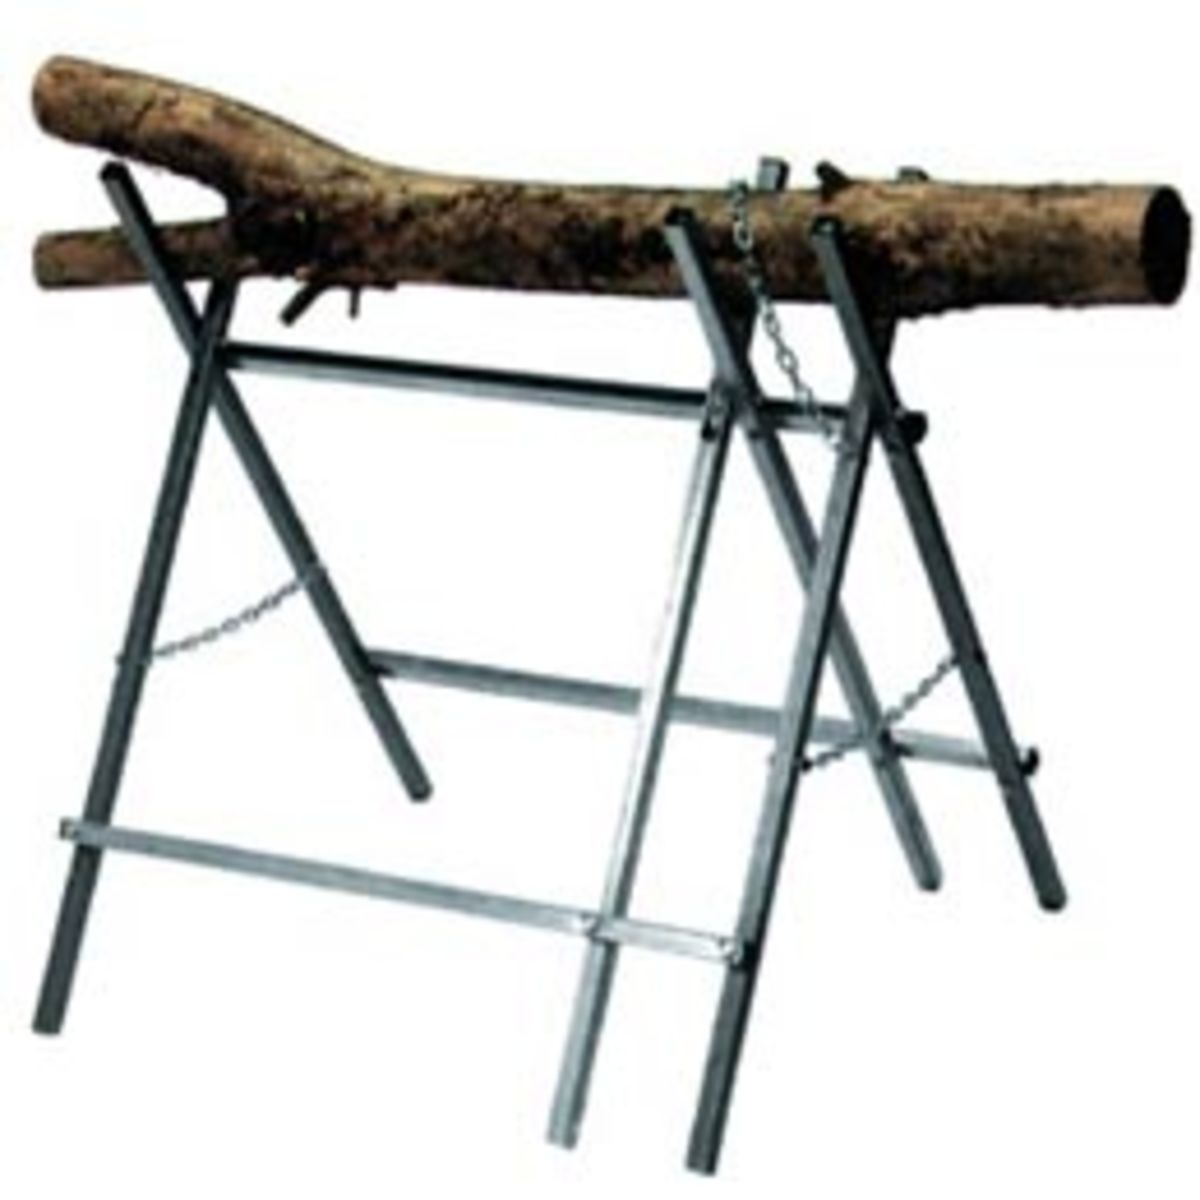 Steel Sawhorse suitable for use with a Chainsaw